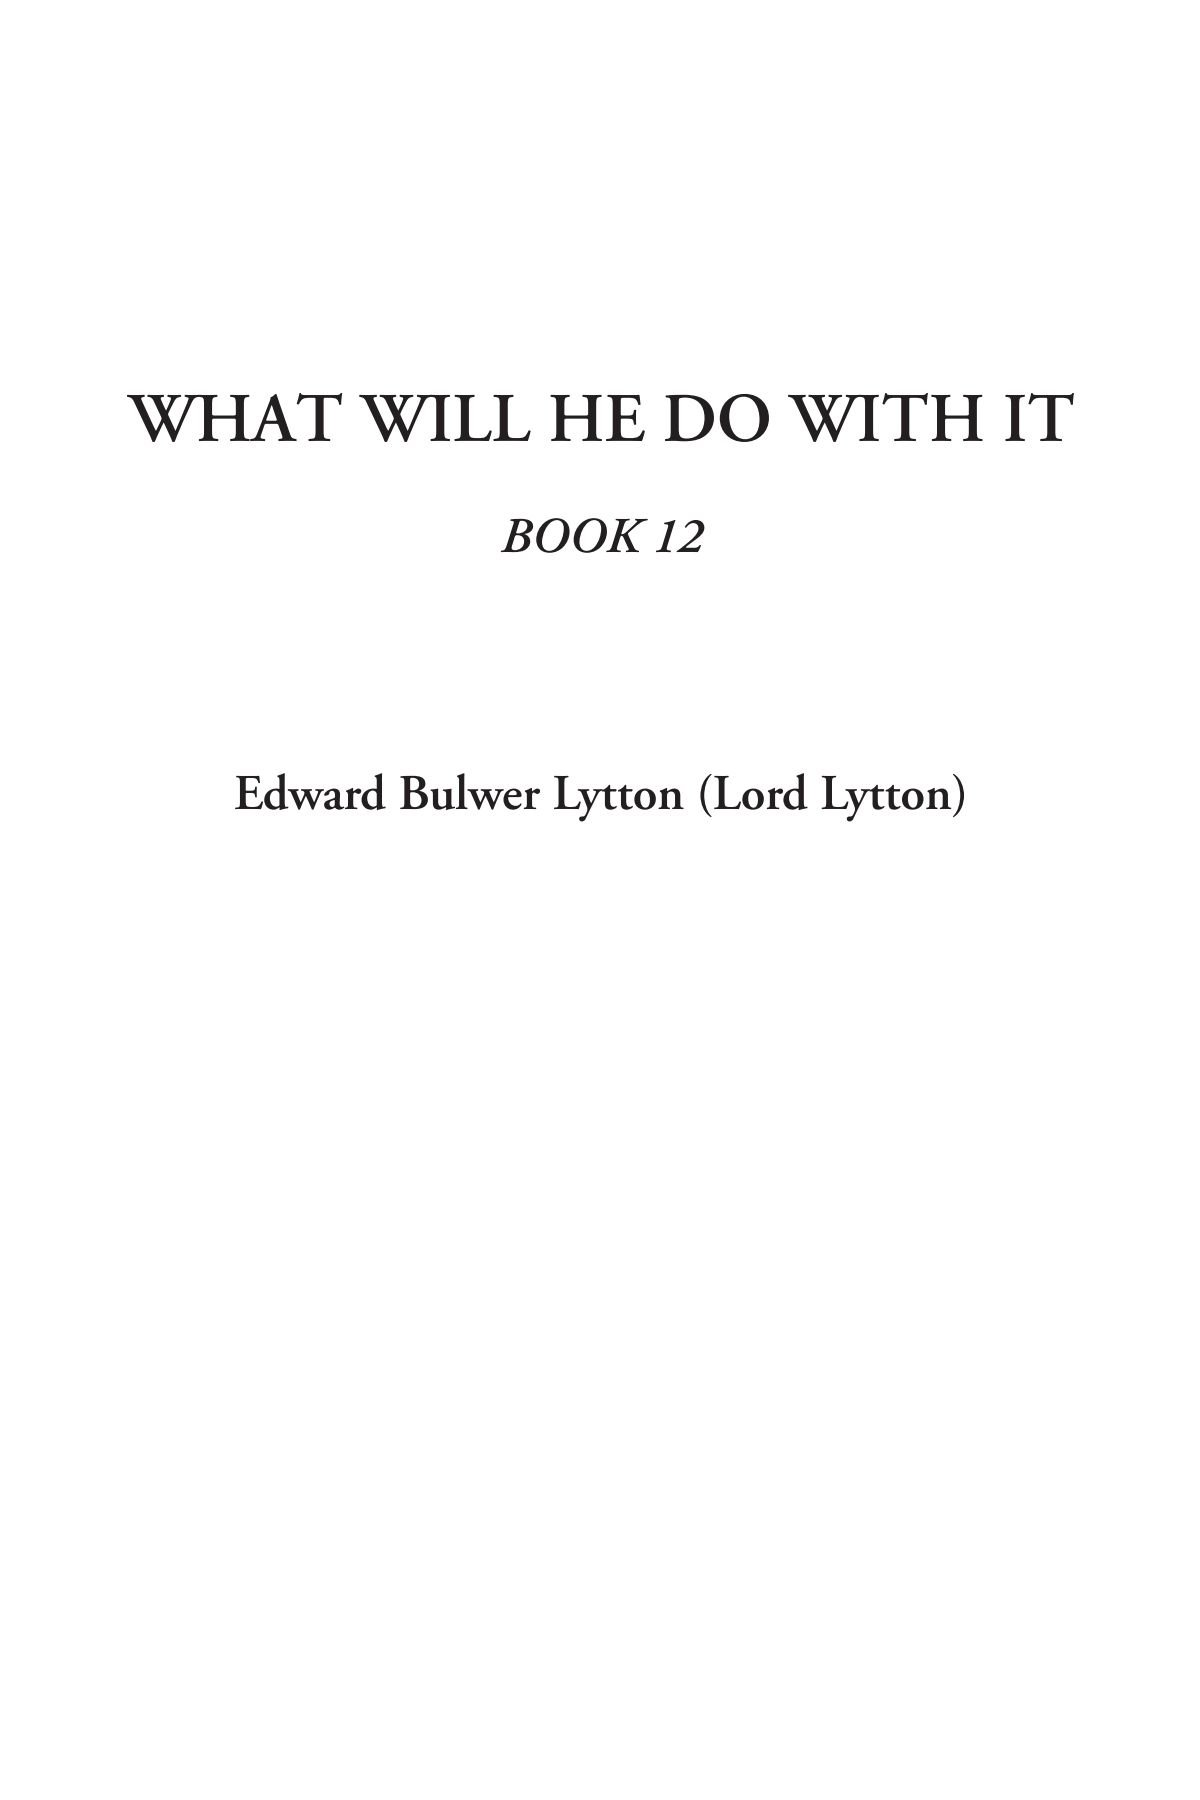 Download What Will He Do With It, Book 12 pdf